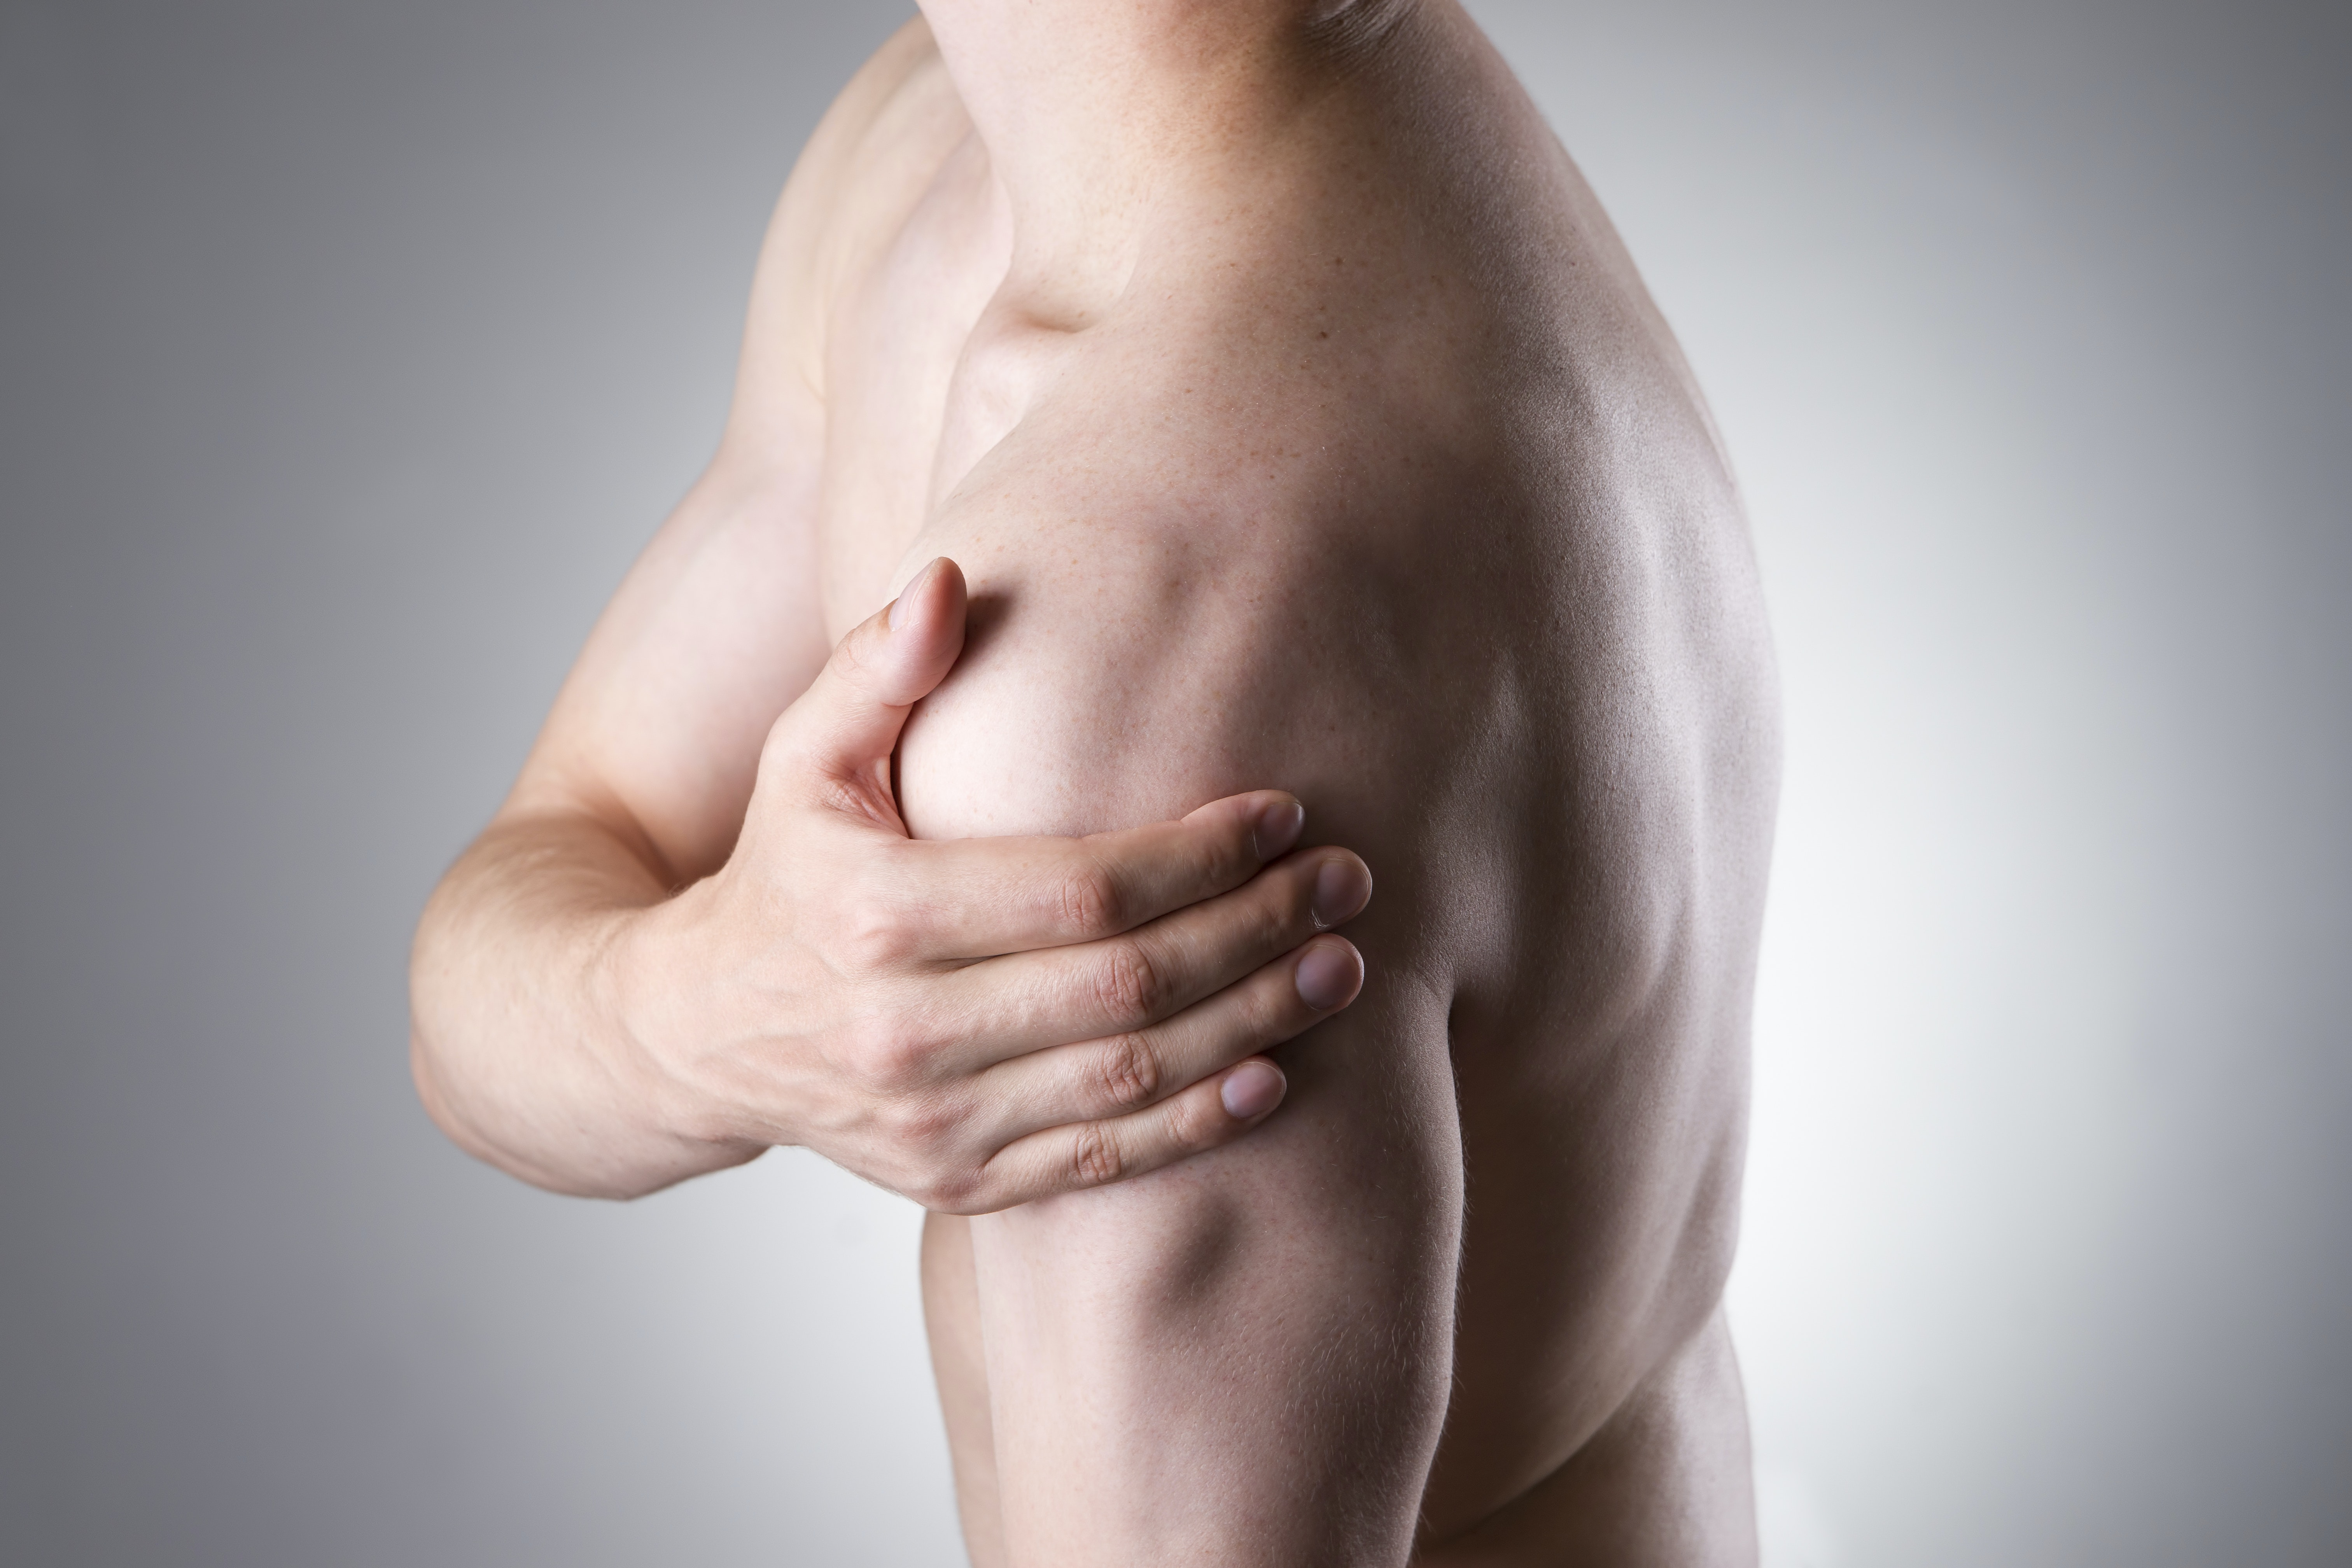 An image depicting a person suffering from shoulder pain that shoots to the arm symptoms